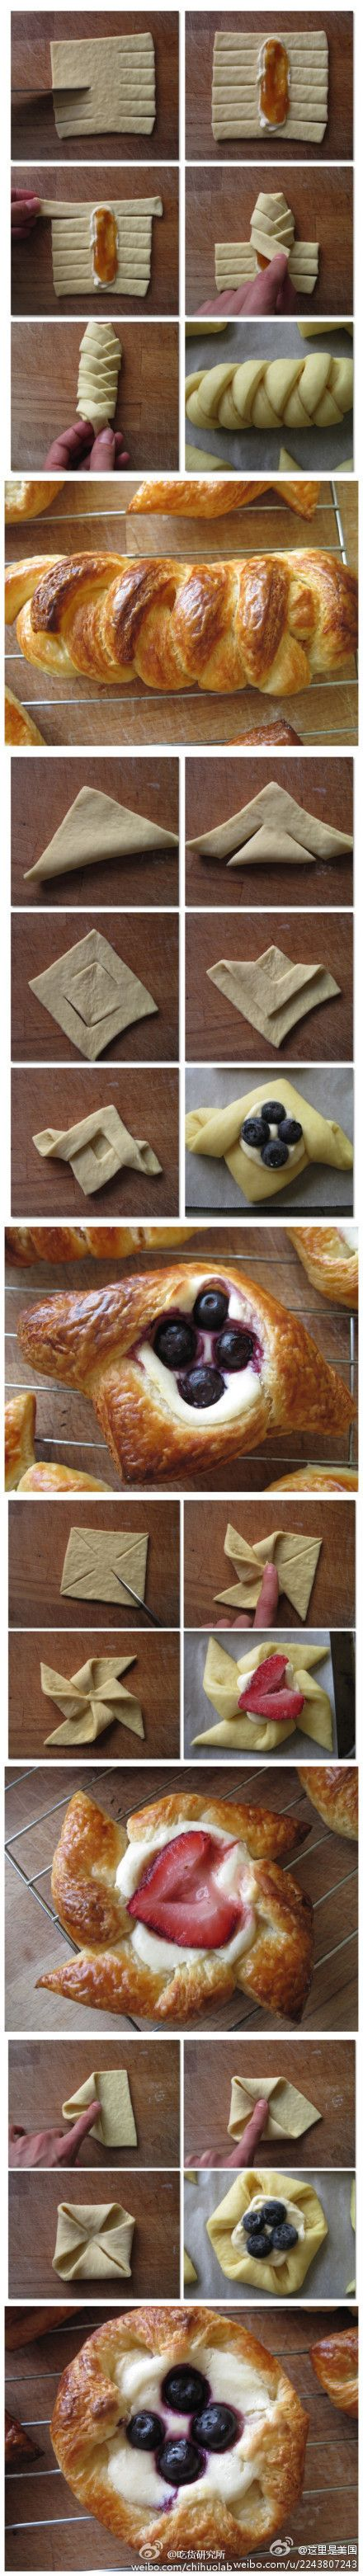 Puff pastry ideas : looks easy enough!